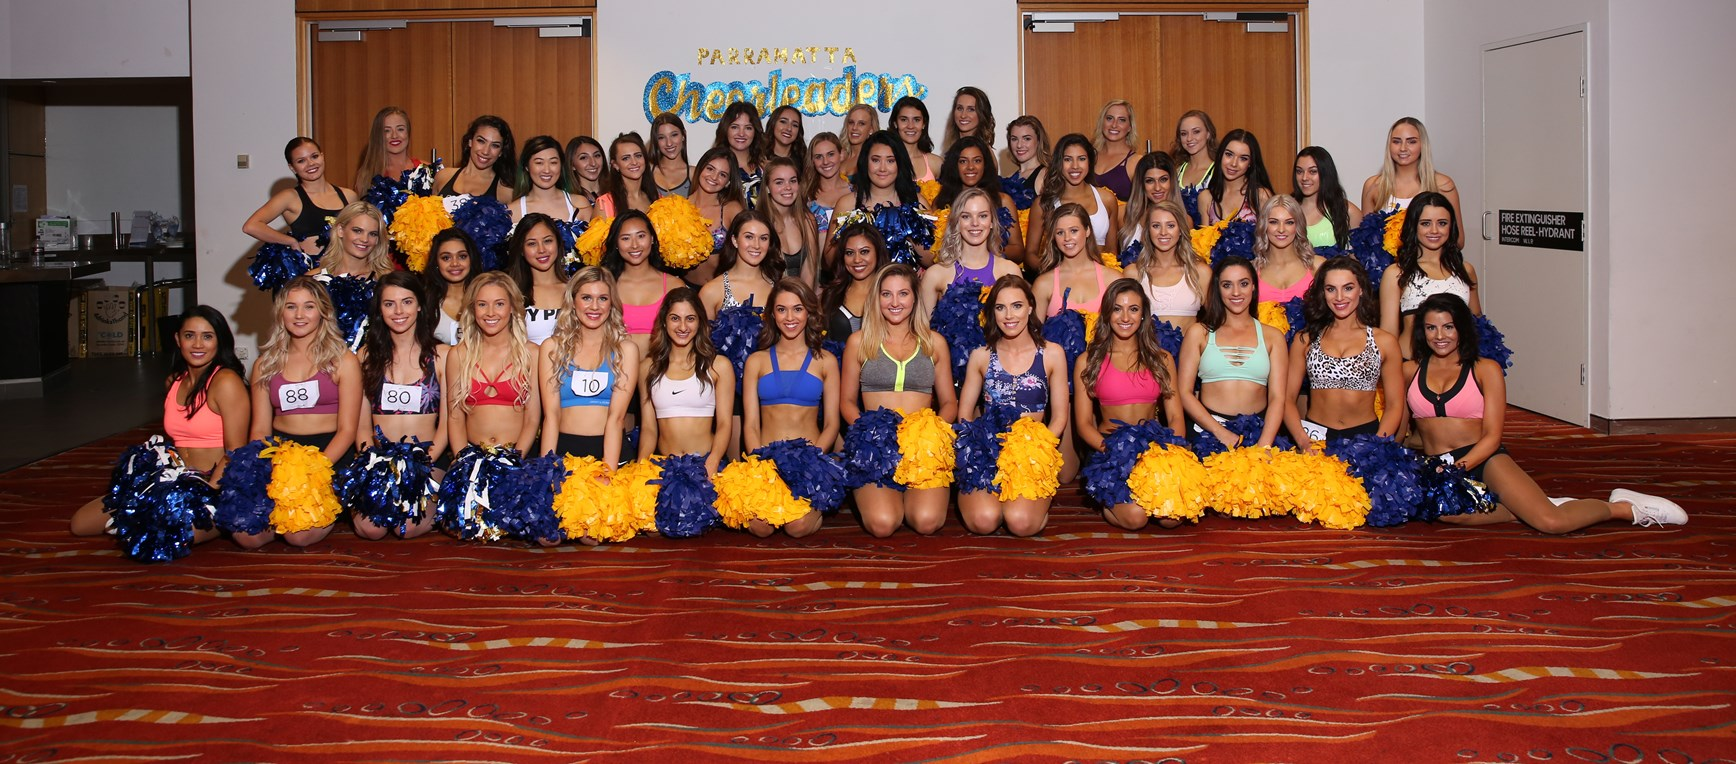 2018 Parramatta Eels Cheerleaders Auditions